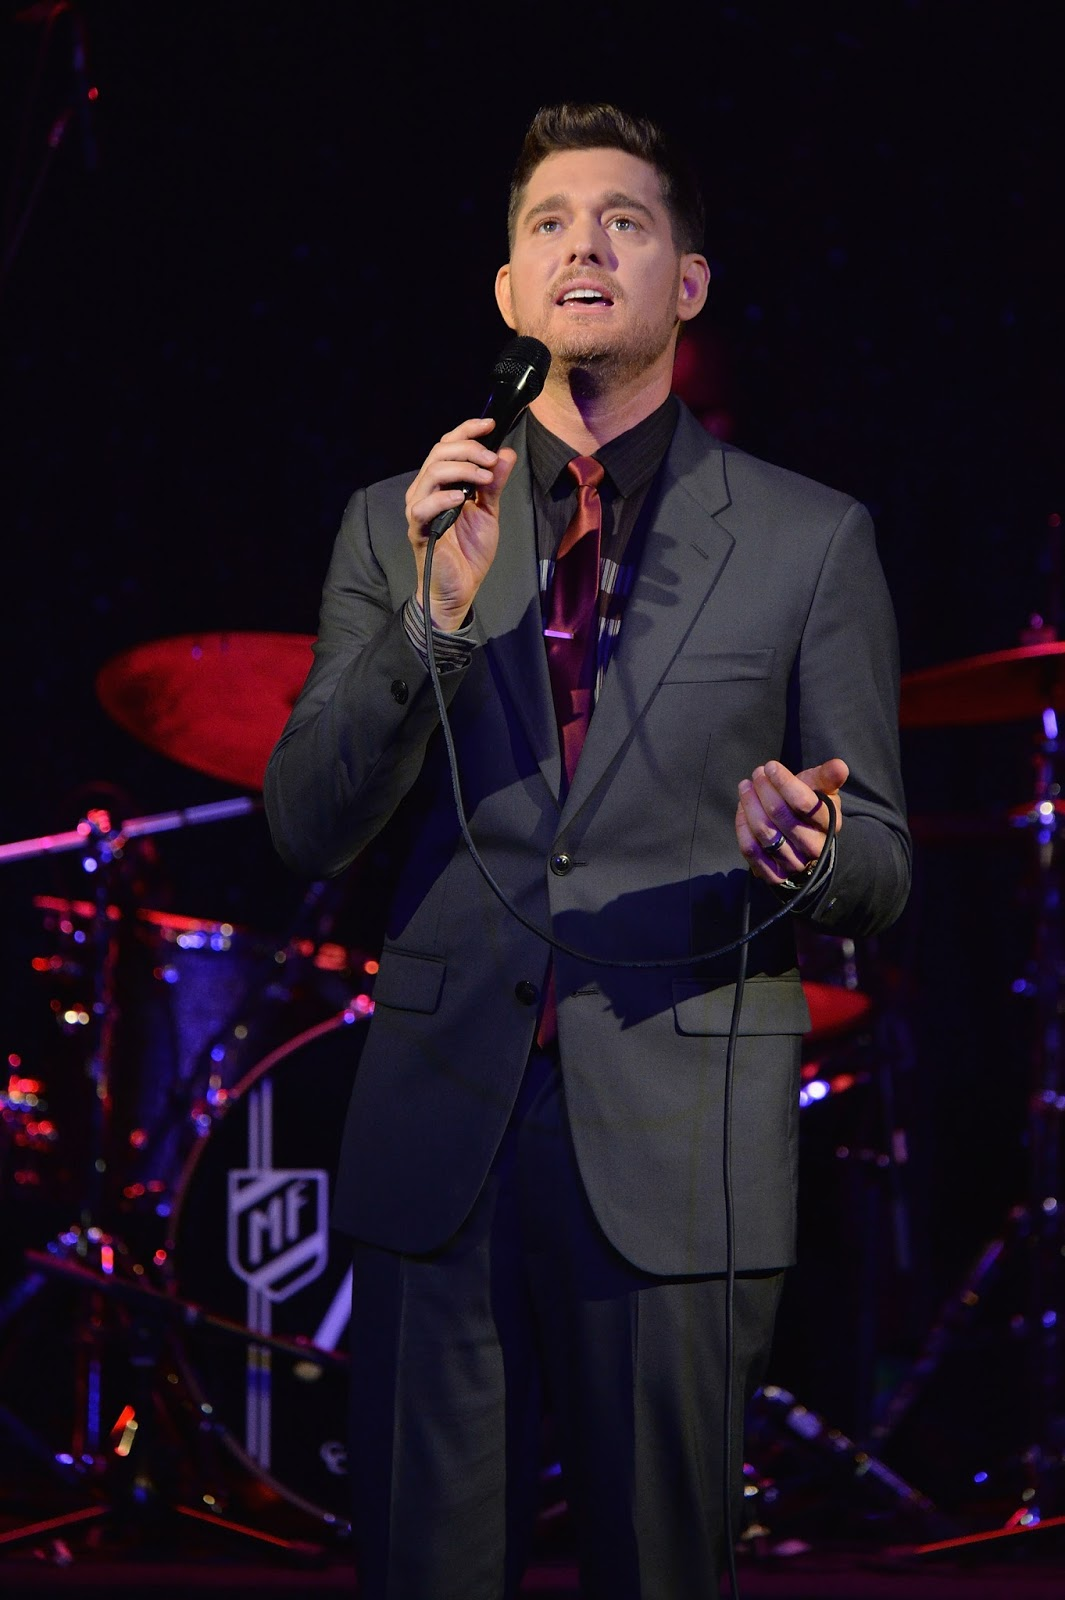 Michael Buble, By Invitation perfume launch in New York performing